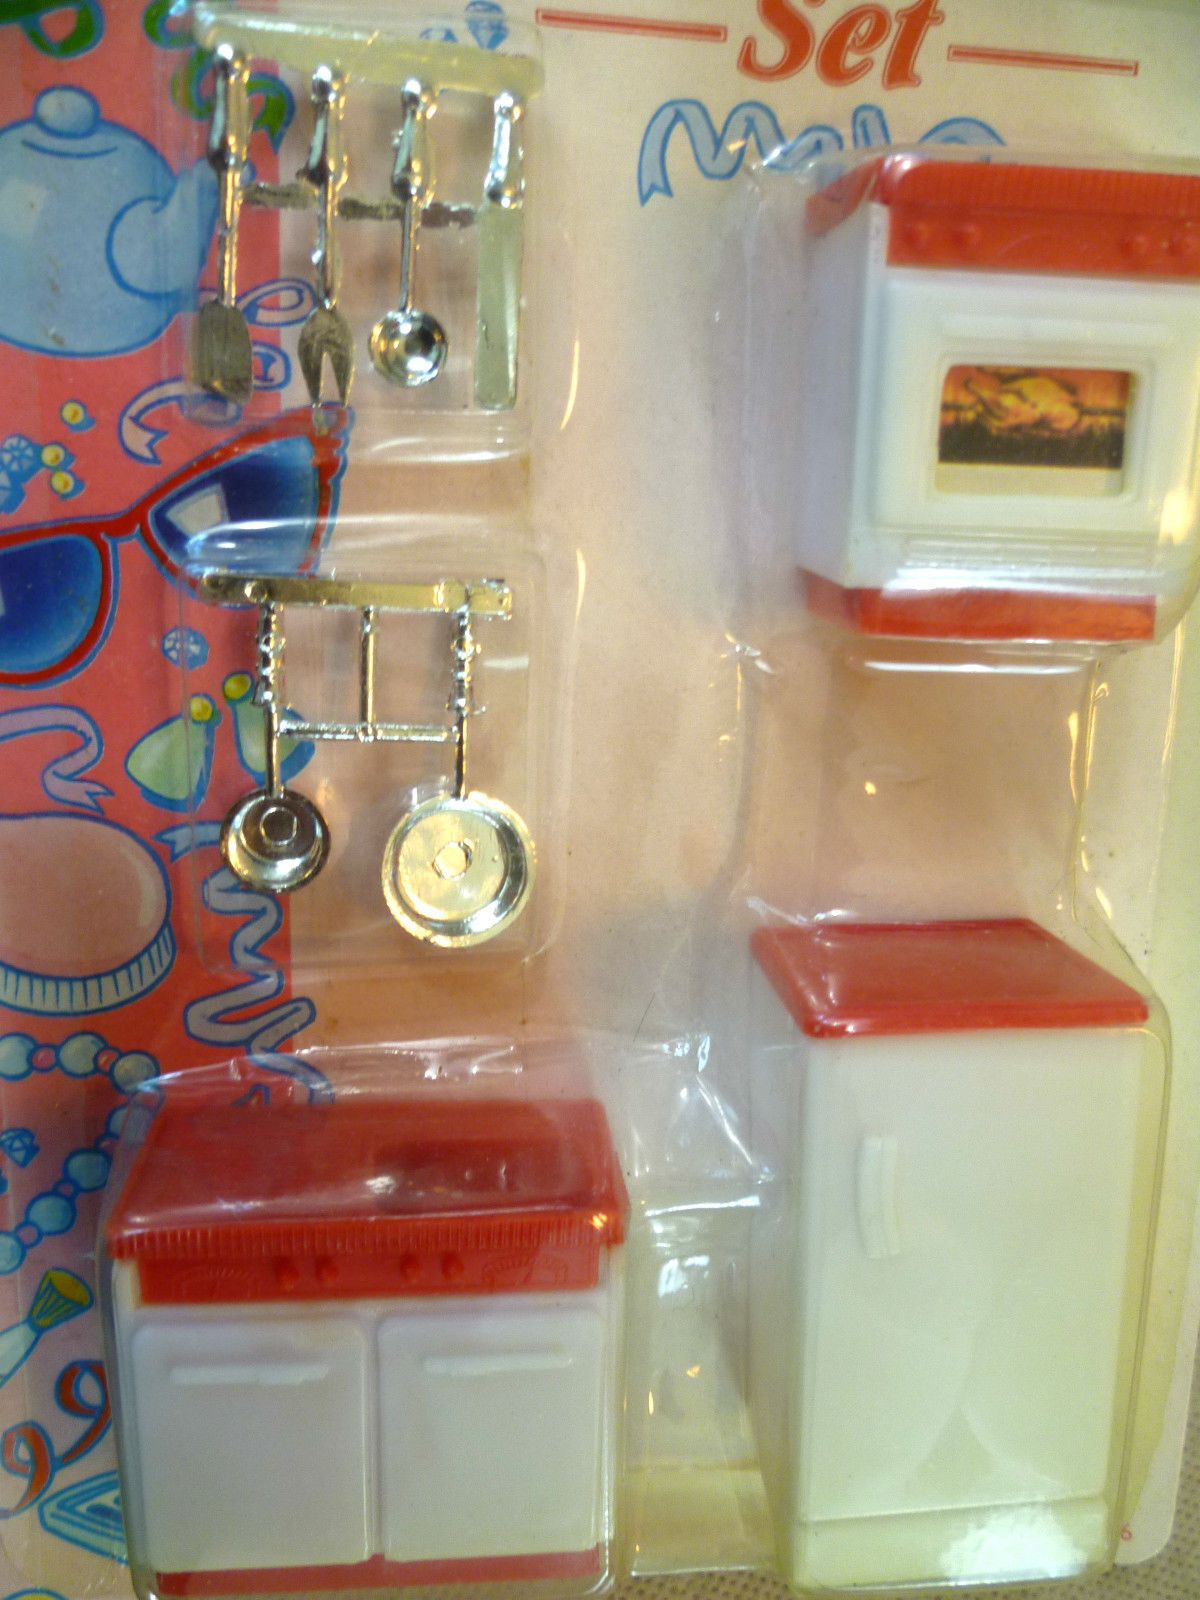 vintage dolls house carded woolworths small scale plastic kitchen